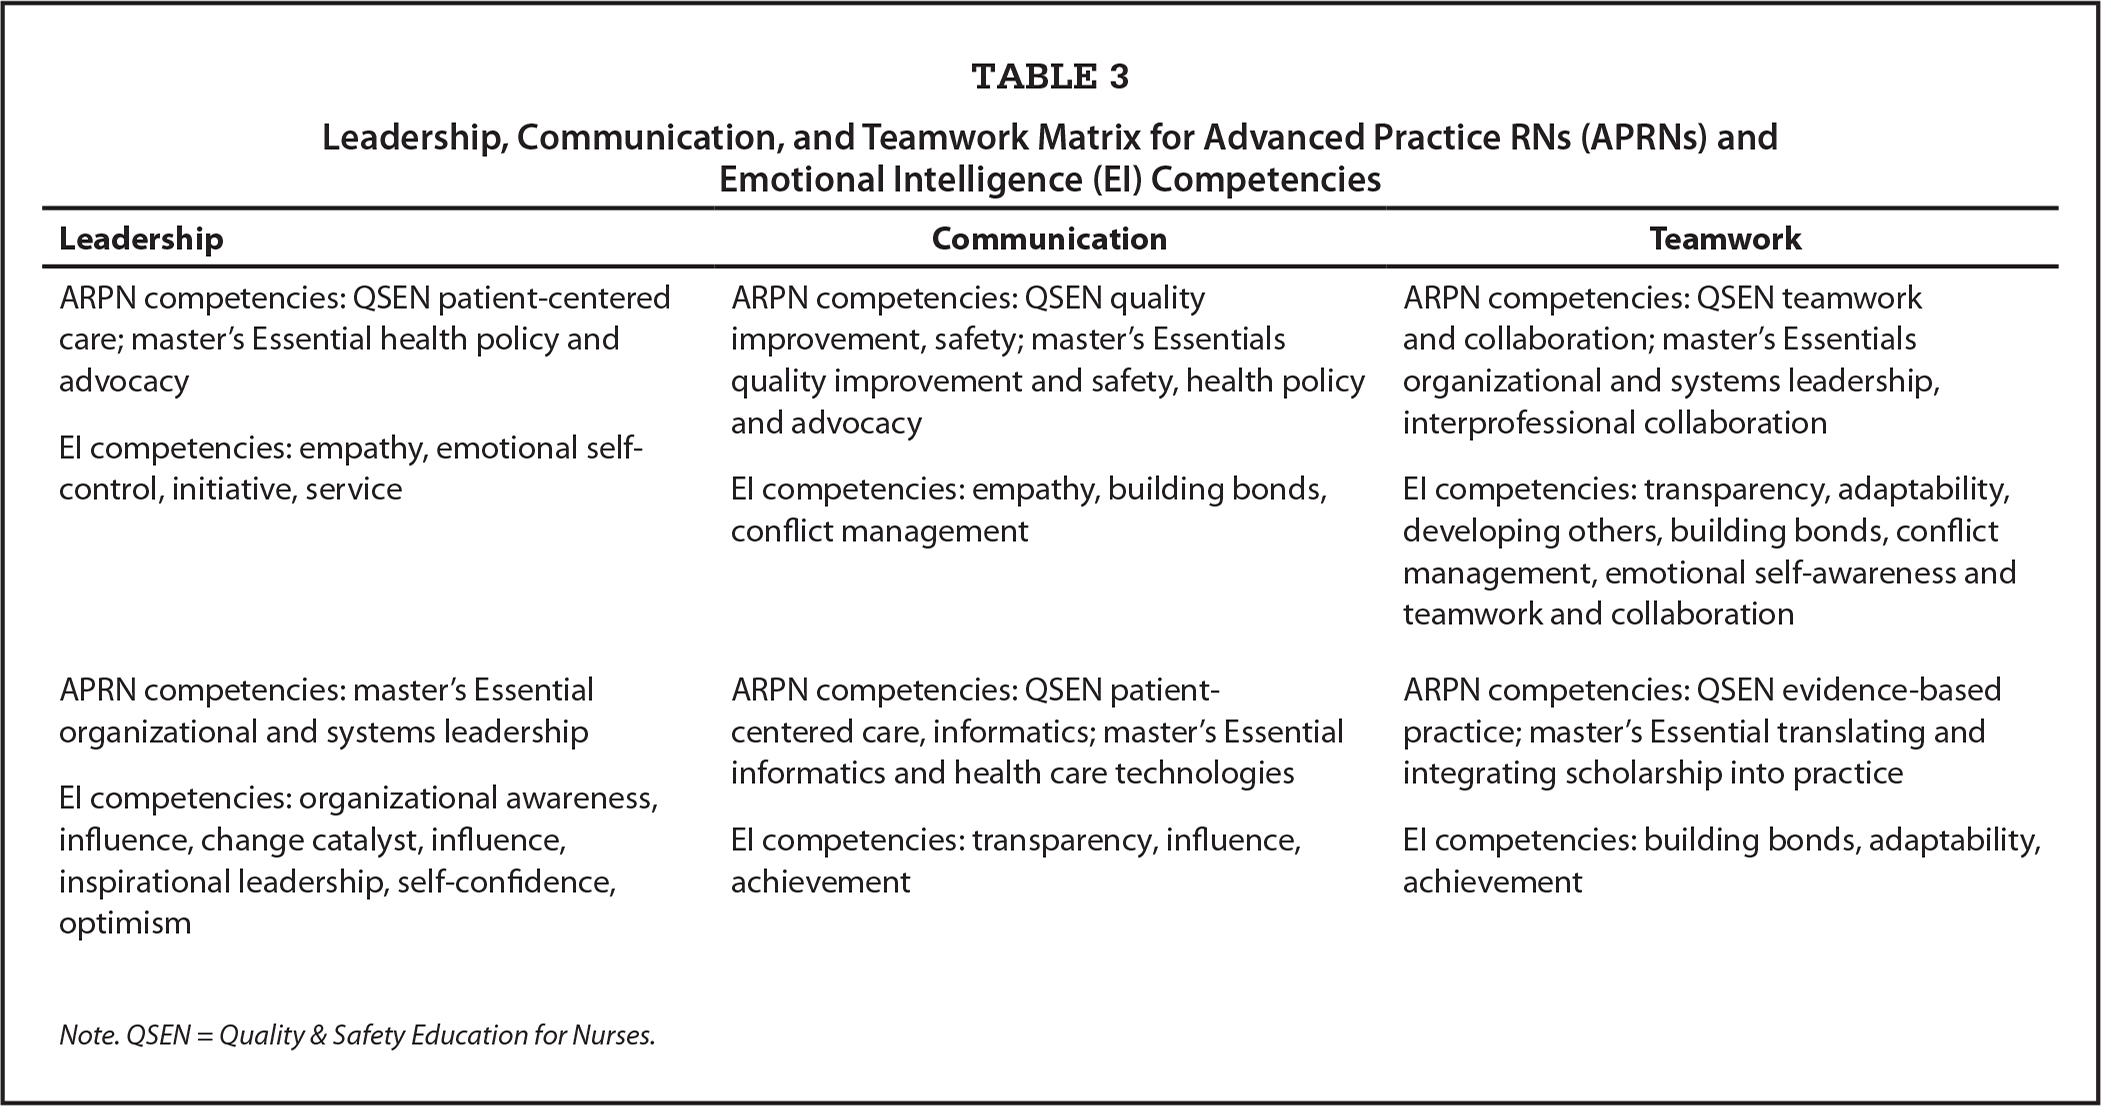 Leadership, Communication, and Teamwork Matrix for Advanced Practice RNs (APRNs) and Emotional Intelligence (EI) Competencies